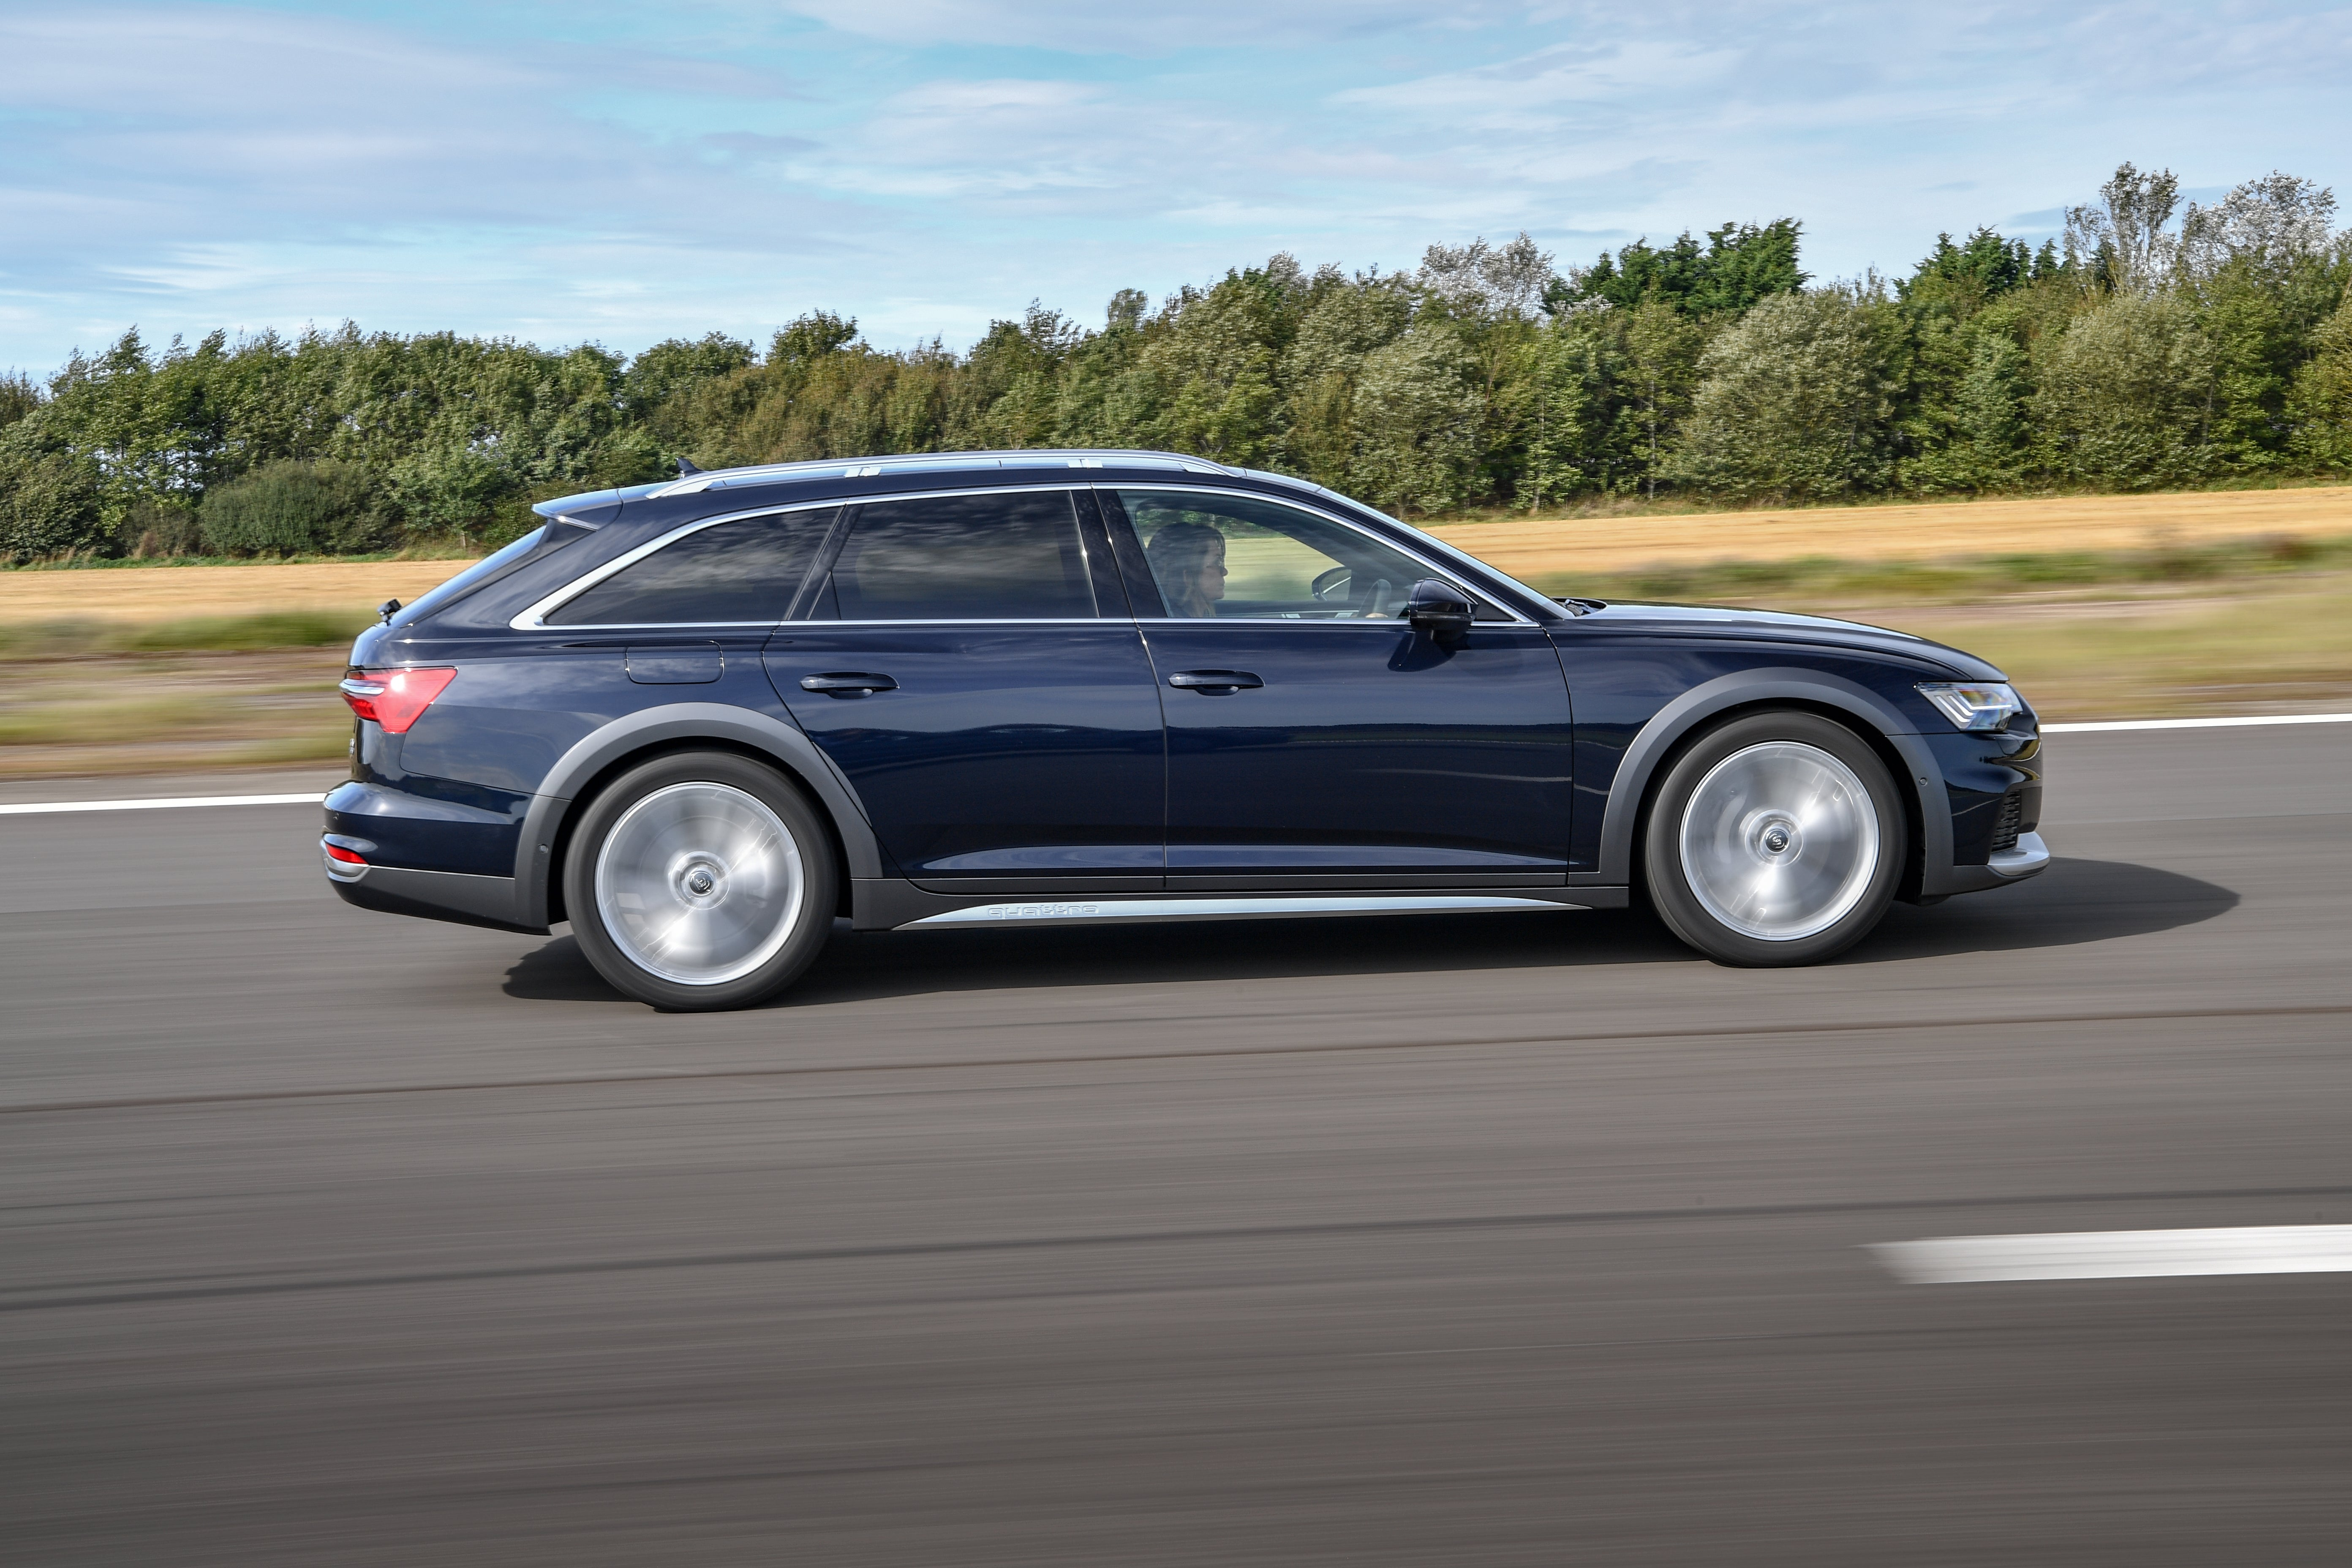 Audi A6 Allroad Driving Side